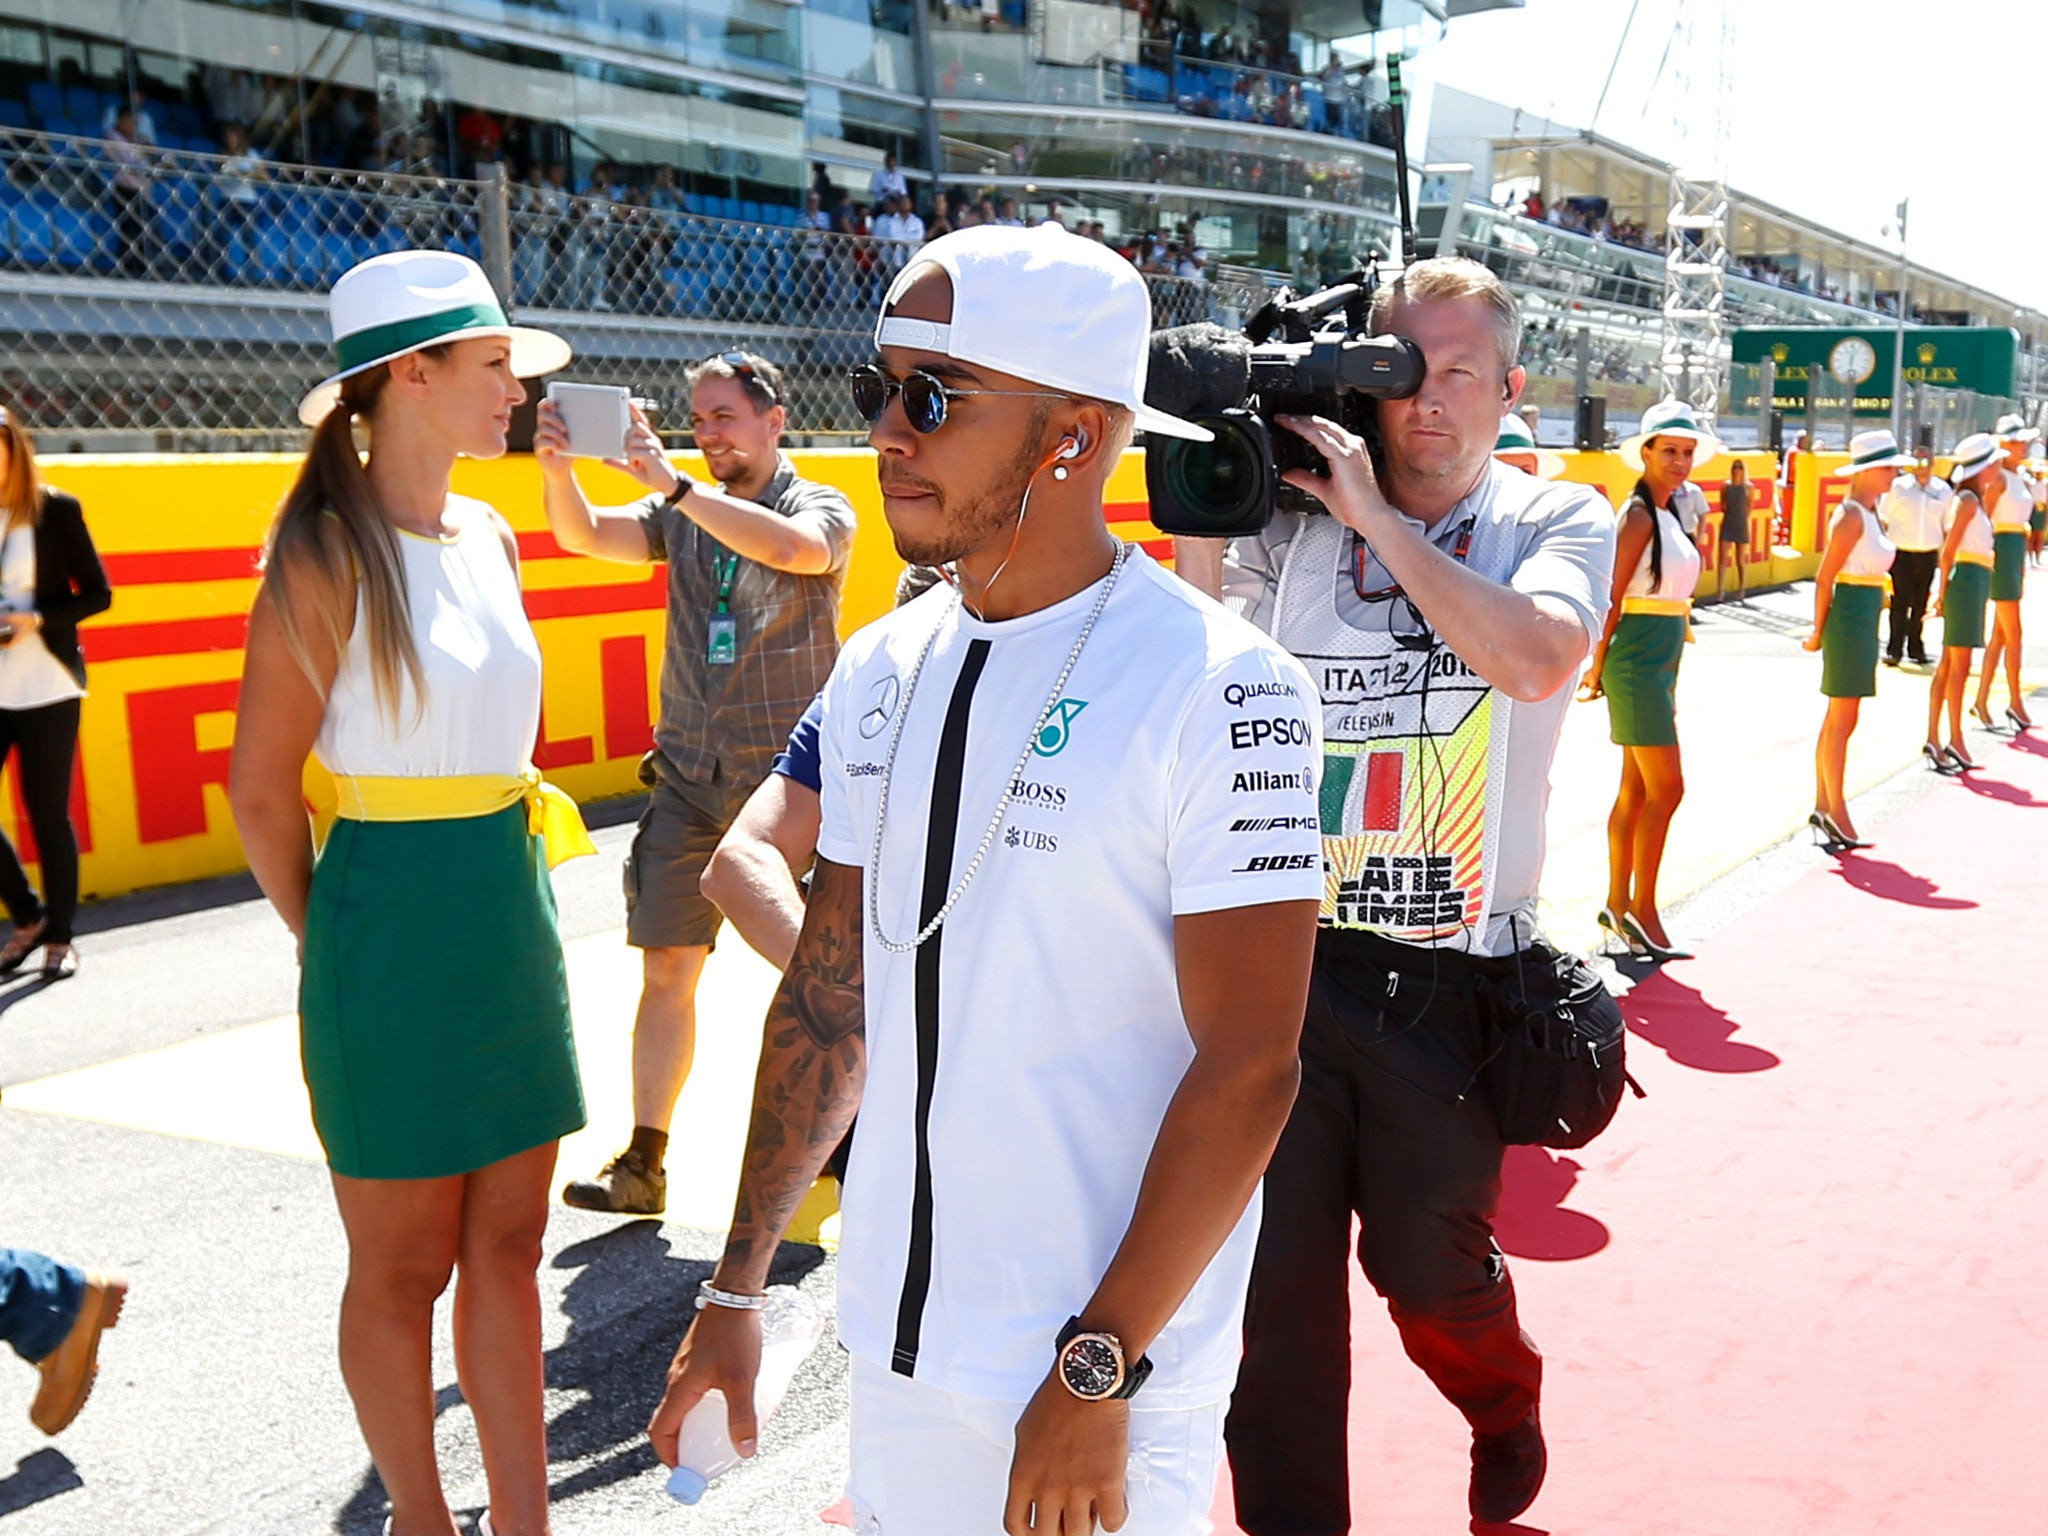 Lewis Hamilton forced to apologise after leaving baseball